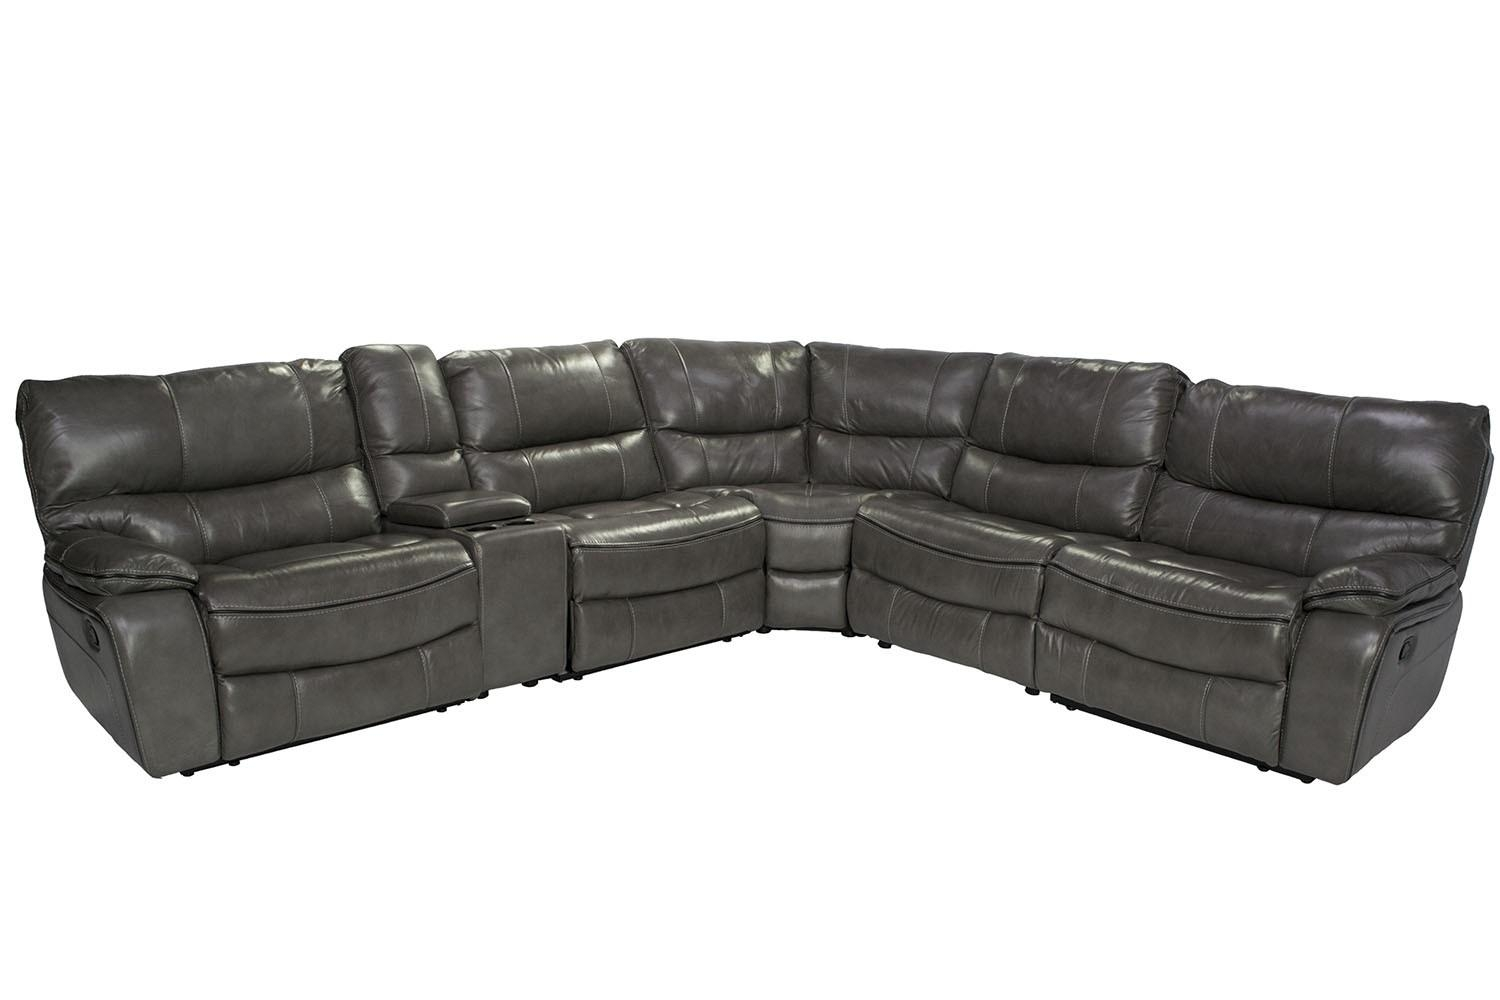 Lotus Gray 6 Piece Leather Seating Reclining Sectional | Mor In 6 Piece Sectional Sofas Couches (View 17 of 20)